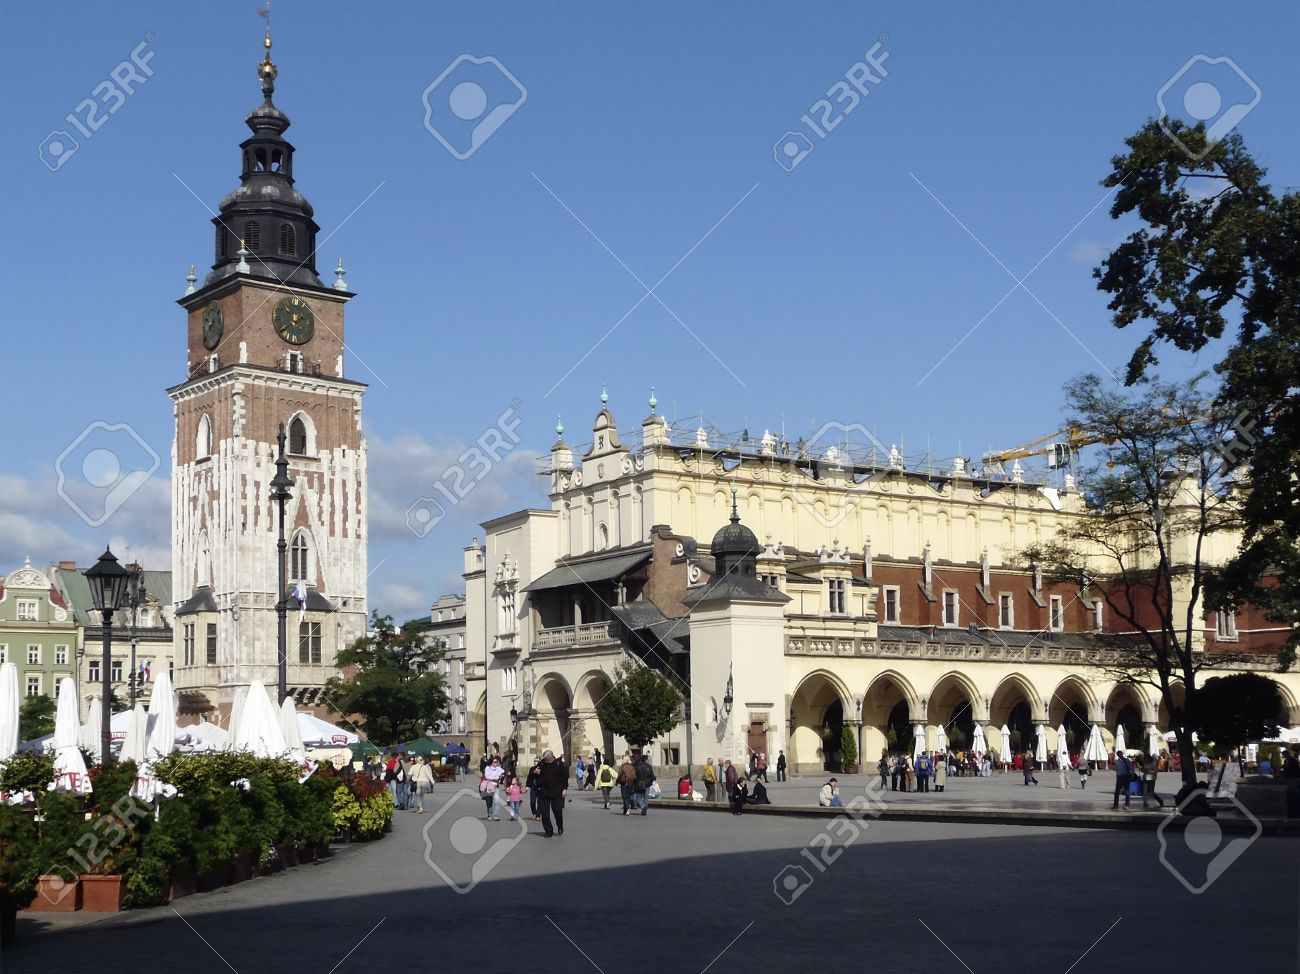 City hall tower and cloth hall in Krakow in Poland Stock Photo - 11180119